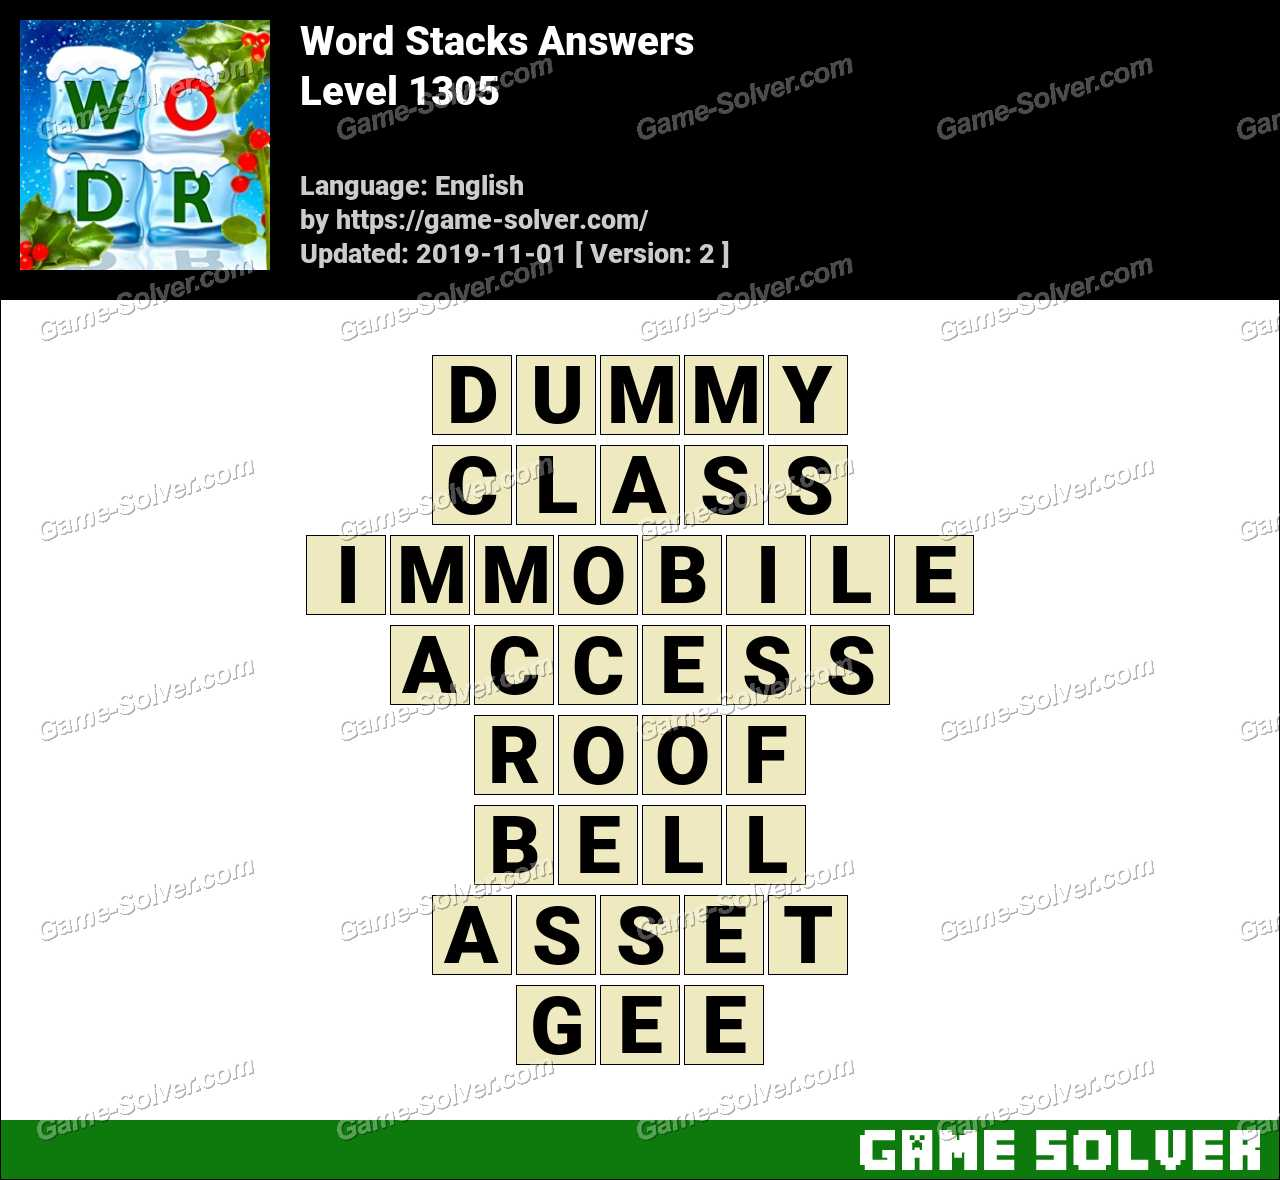 Word Stacks Level 1305 Answers